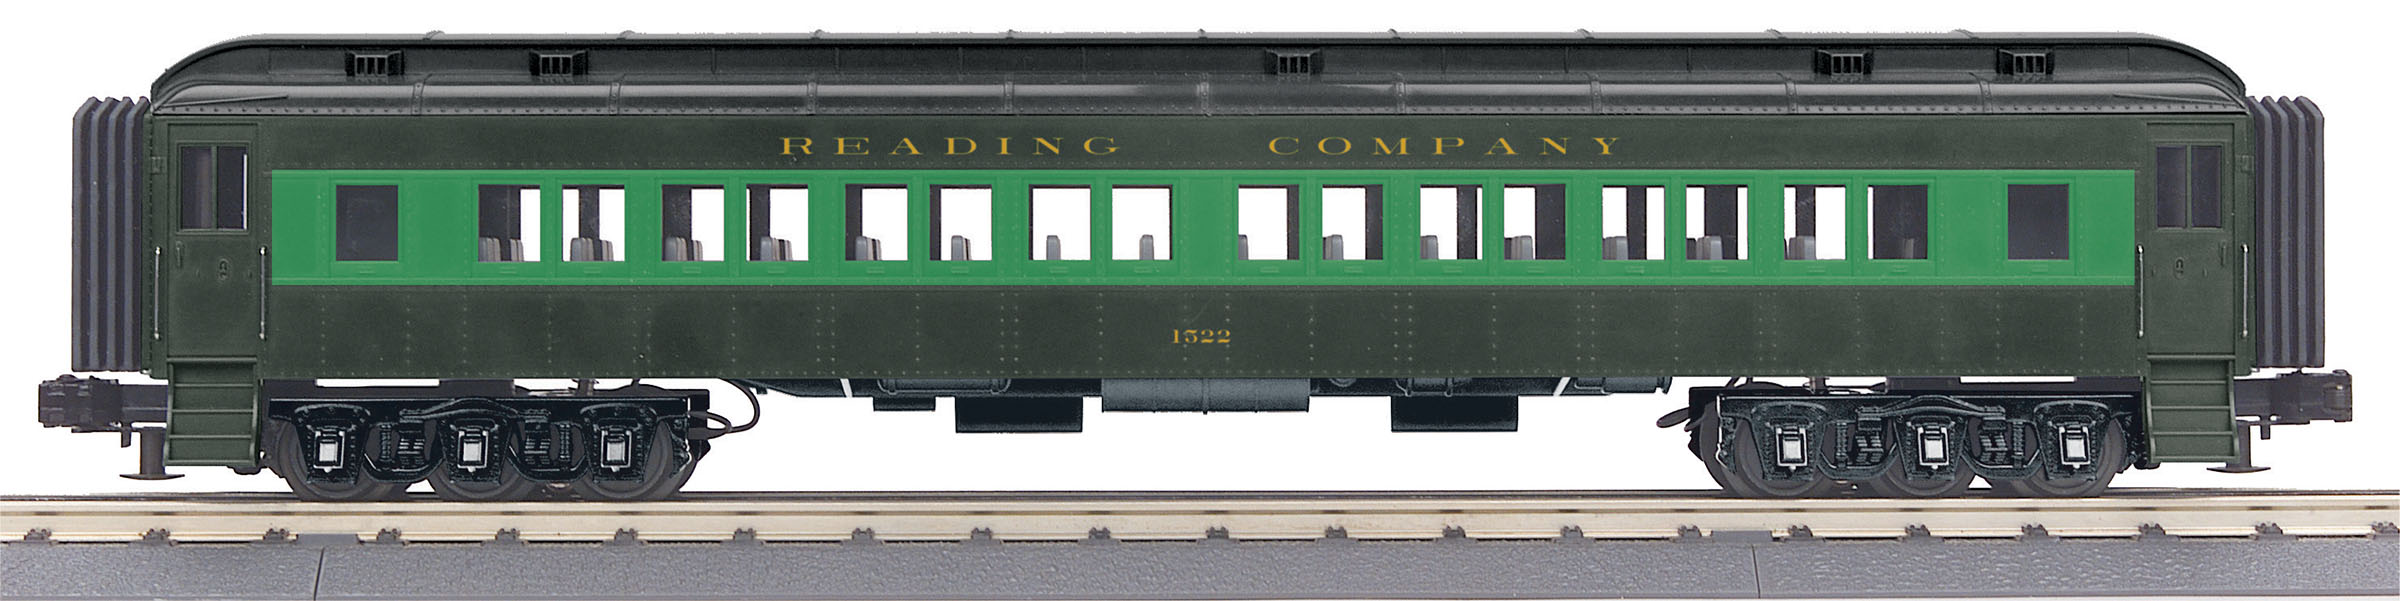 MTH 3069326 O-27 60' Madison Coach Car, RDG #1523 MTH3069326